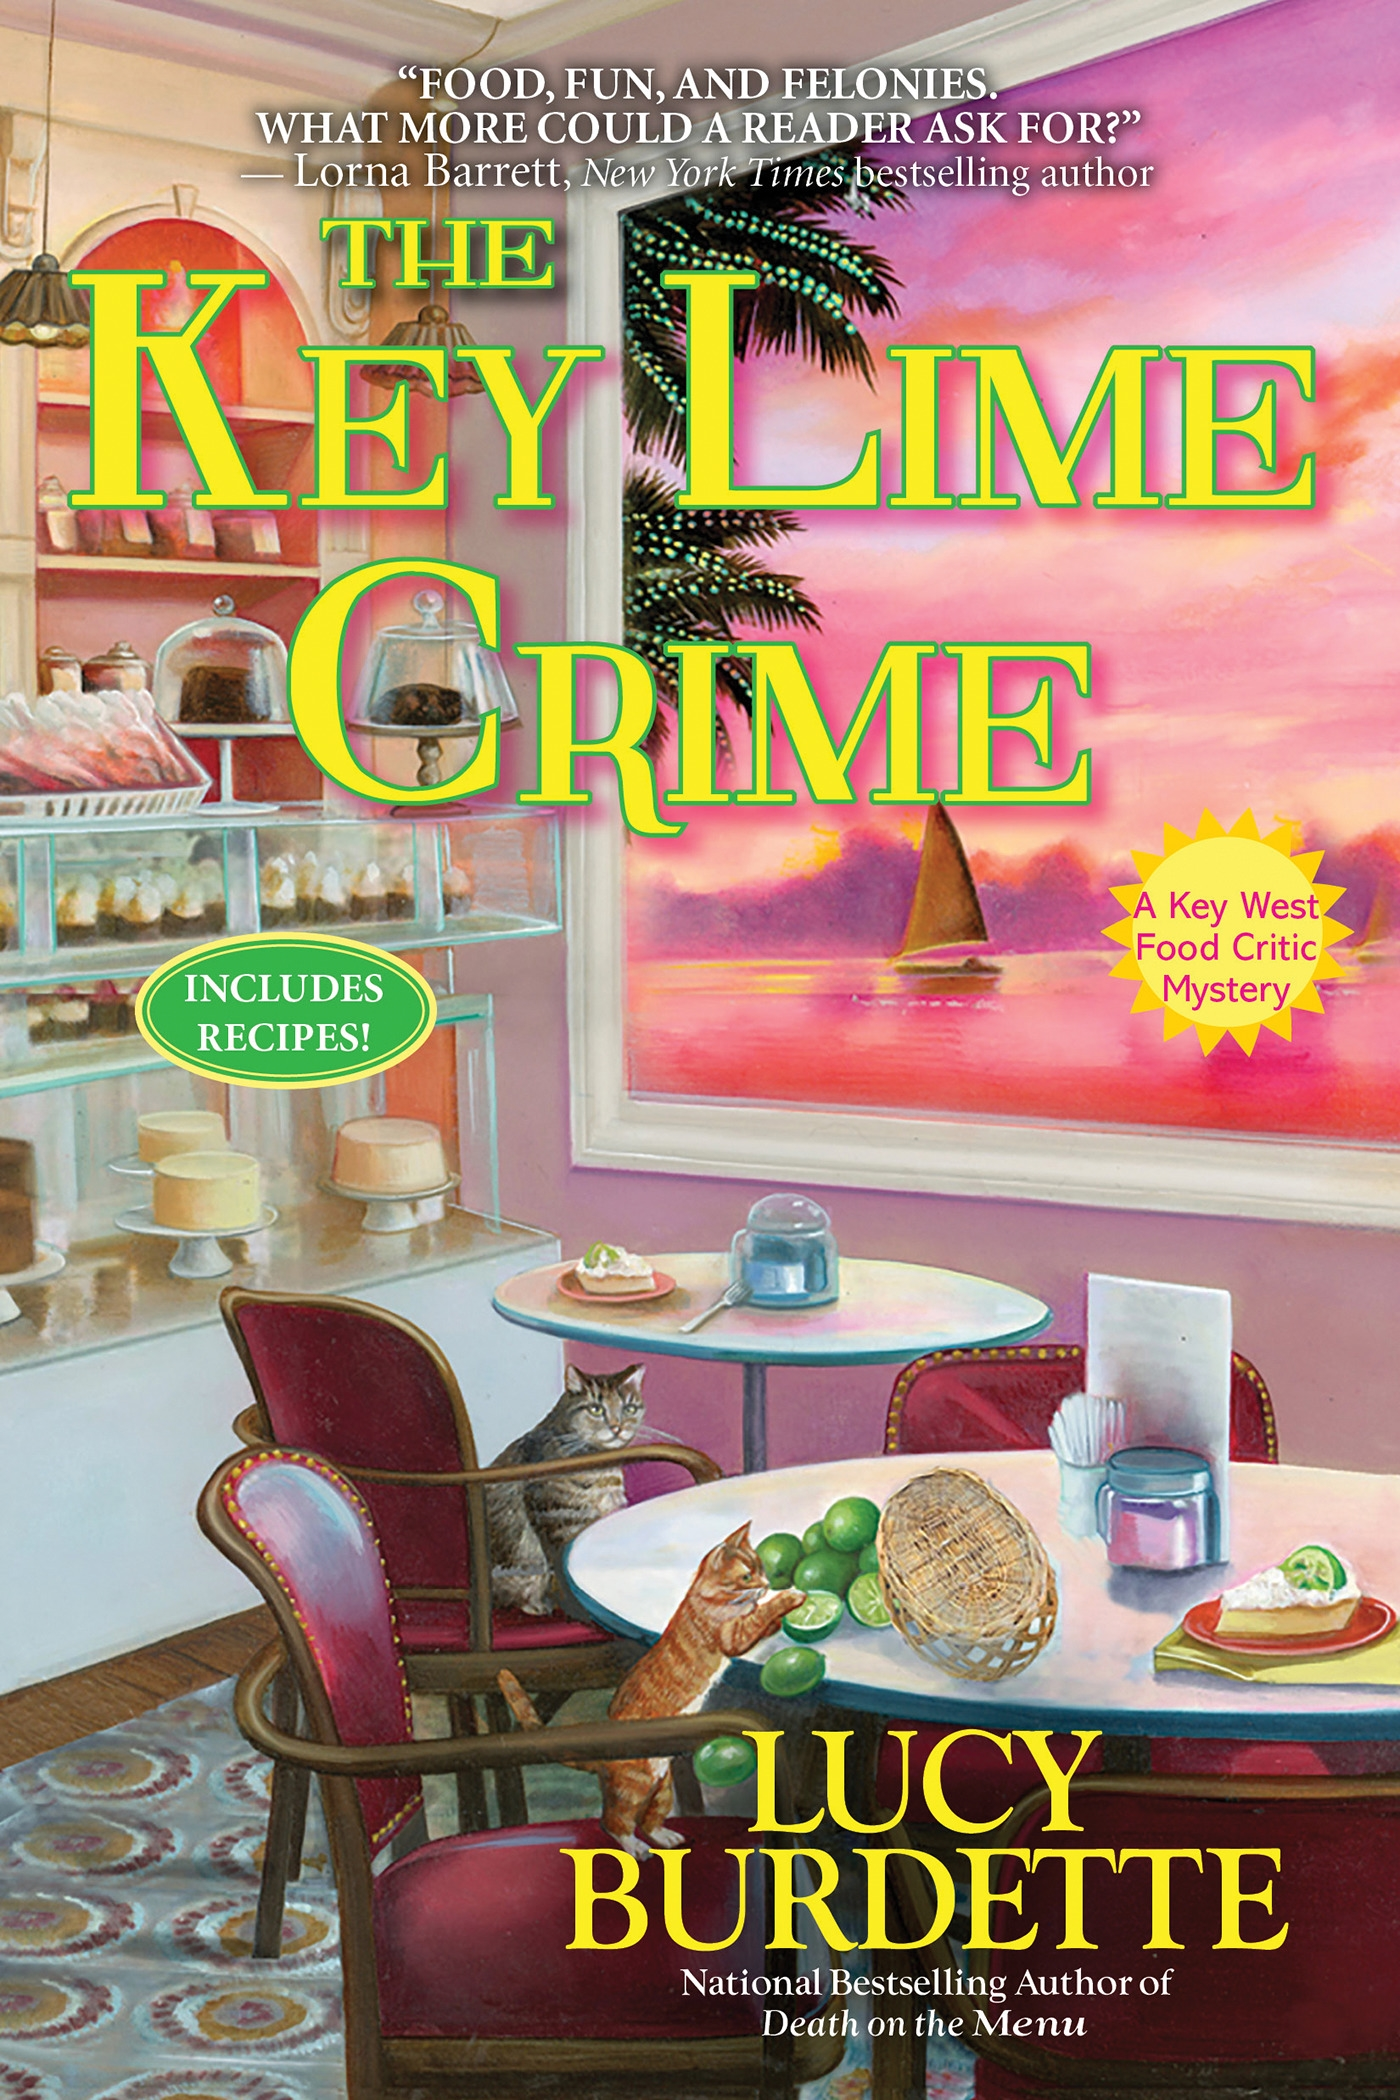 The Key Lime Crime: A Key West Food Critic Mystery